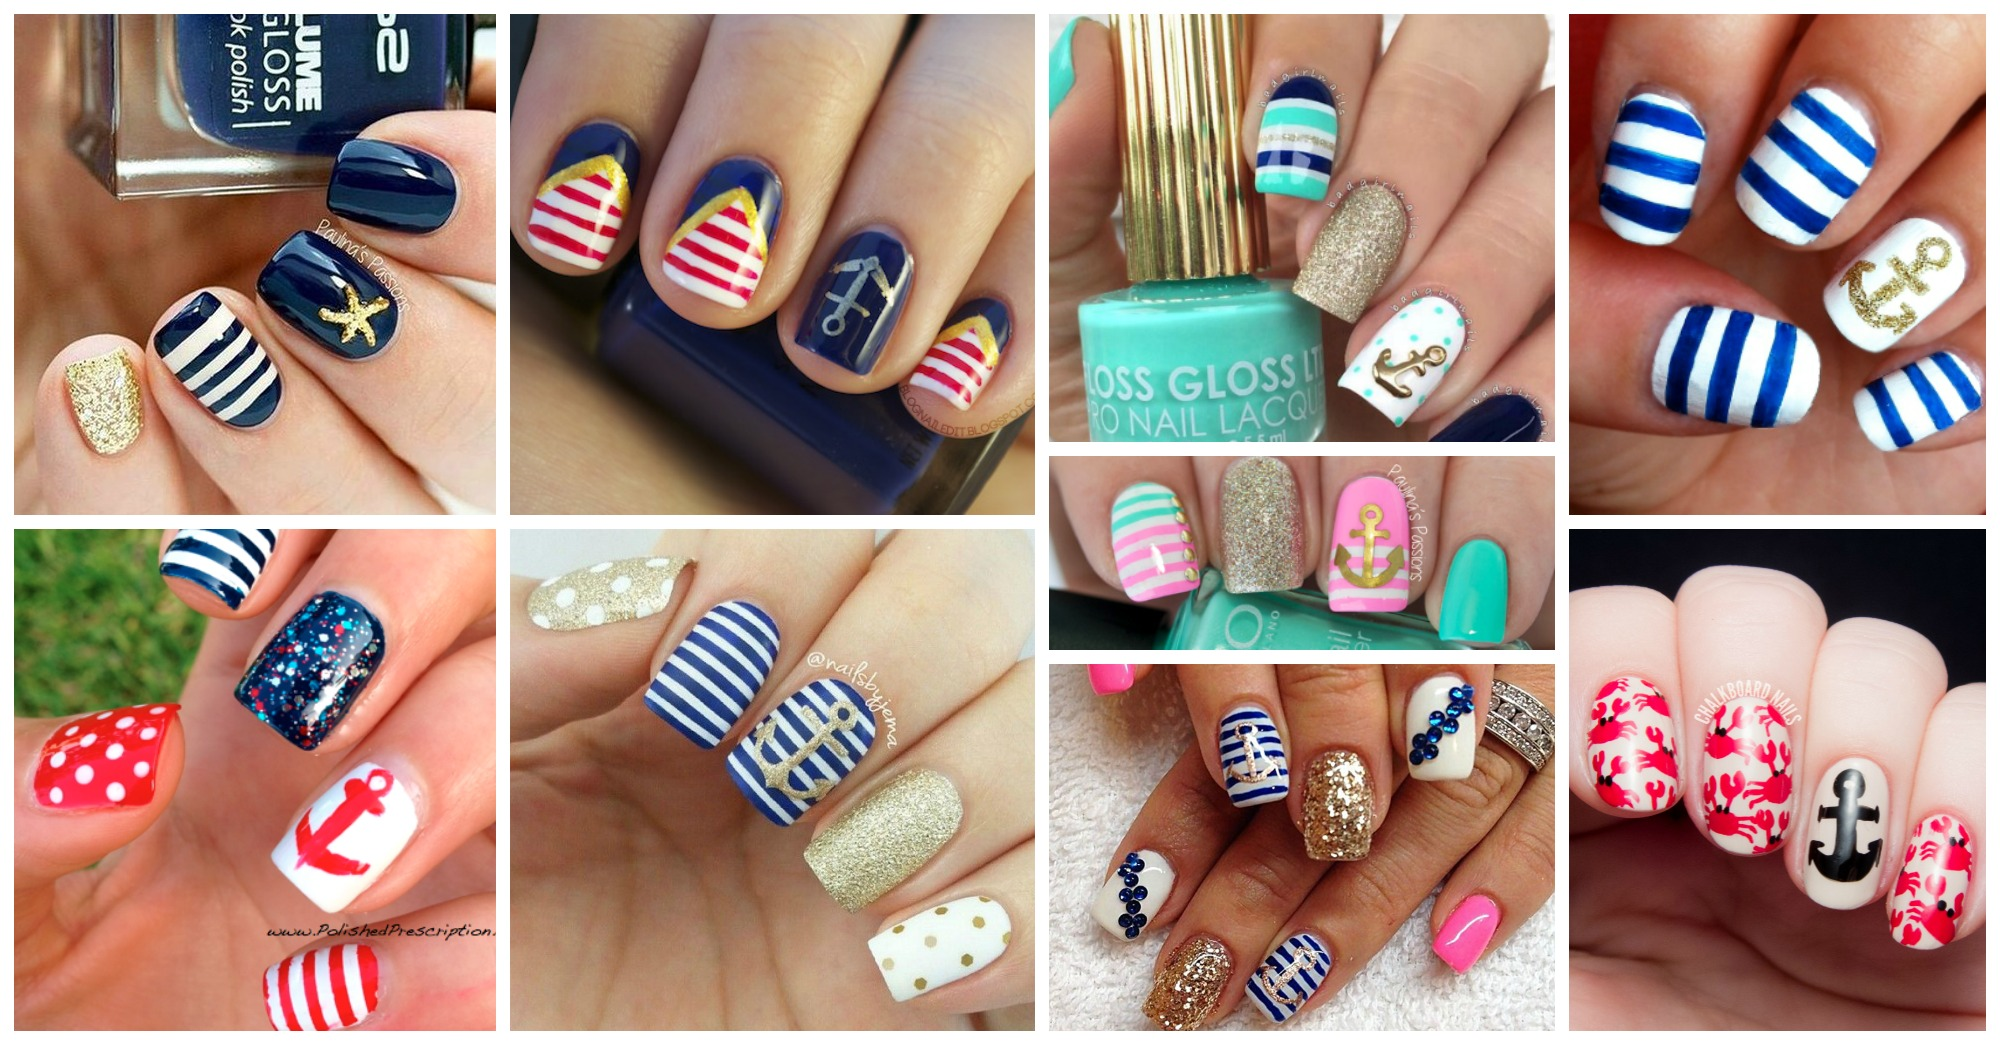 20 Adorable Nautical Nail Designs You Need to Try This Summer